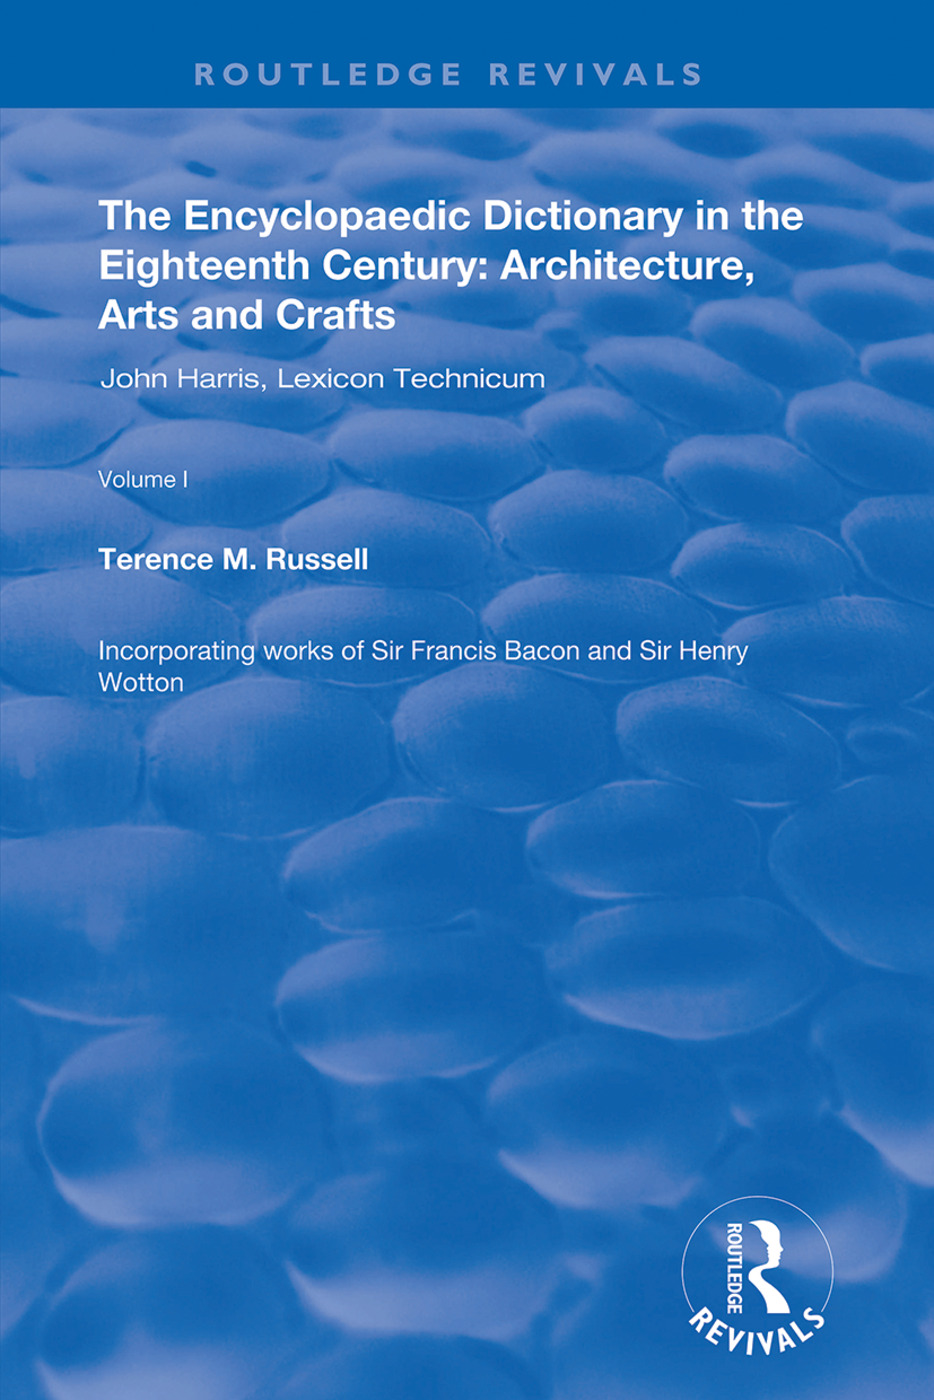 The Encyclopaedic Dictionary in the Eighteenth Century: Architecture, Arts and Crafts: v. 1: John Harris and the Lexicon Technicum: Architecture, Arts and Crafts, 1st Edition (Paperback) book cover